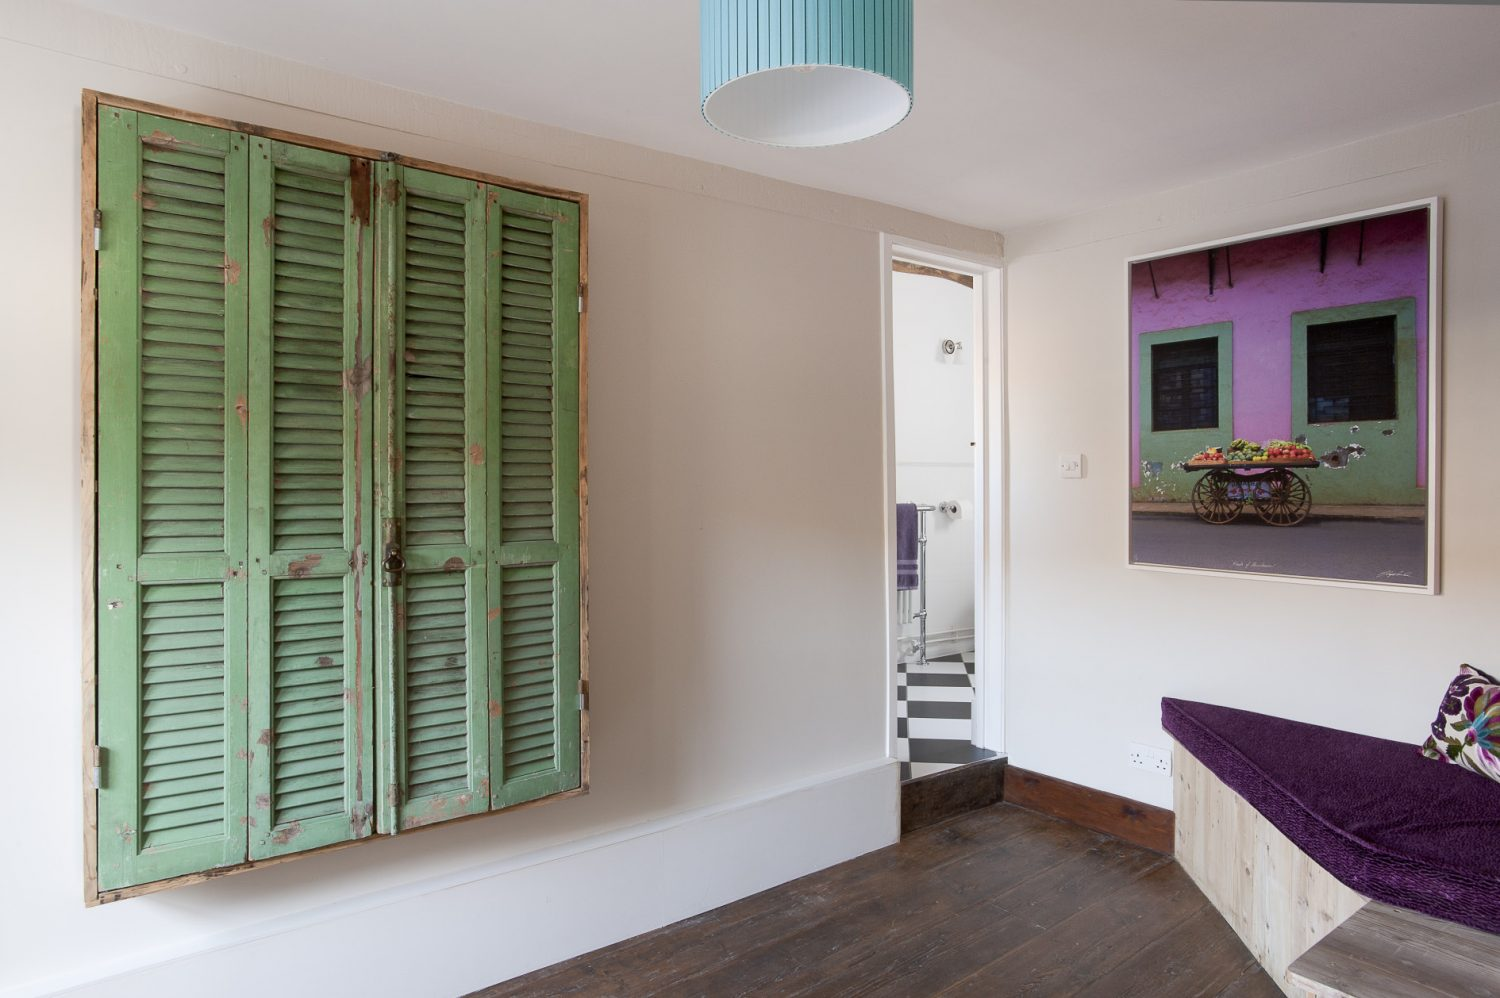 In the study a large photograph printed on canvas echoes the vivid purple and green soft furnishings that Rosemary has used in the room. The bathroom next door features black and white diamond floor tiles, a roll top bath and a Savoy style pedestal basin...